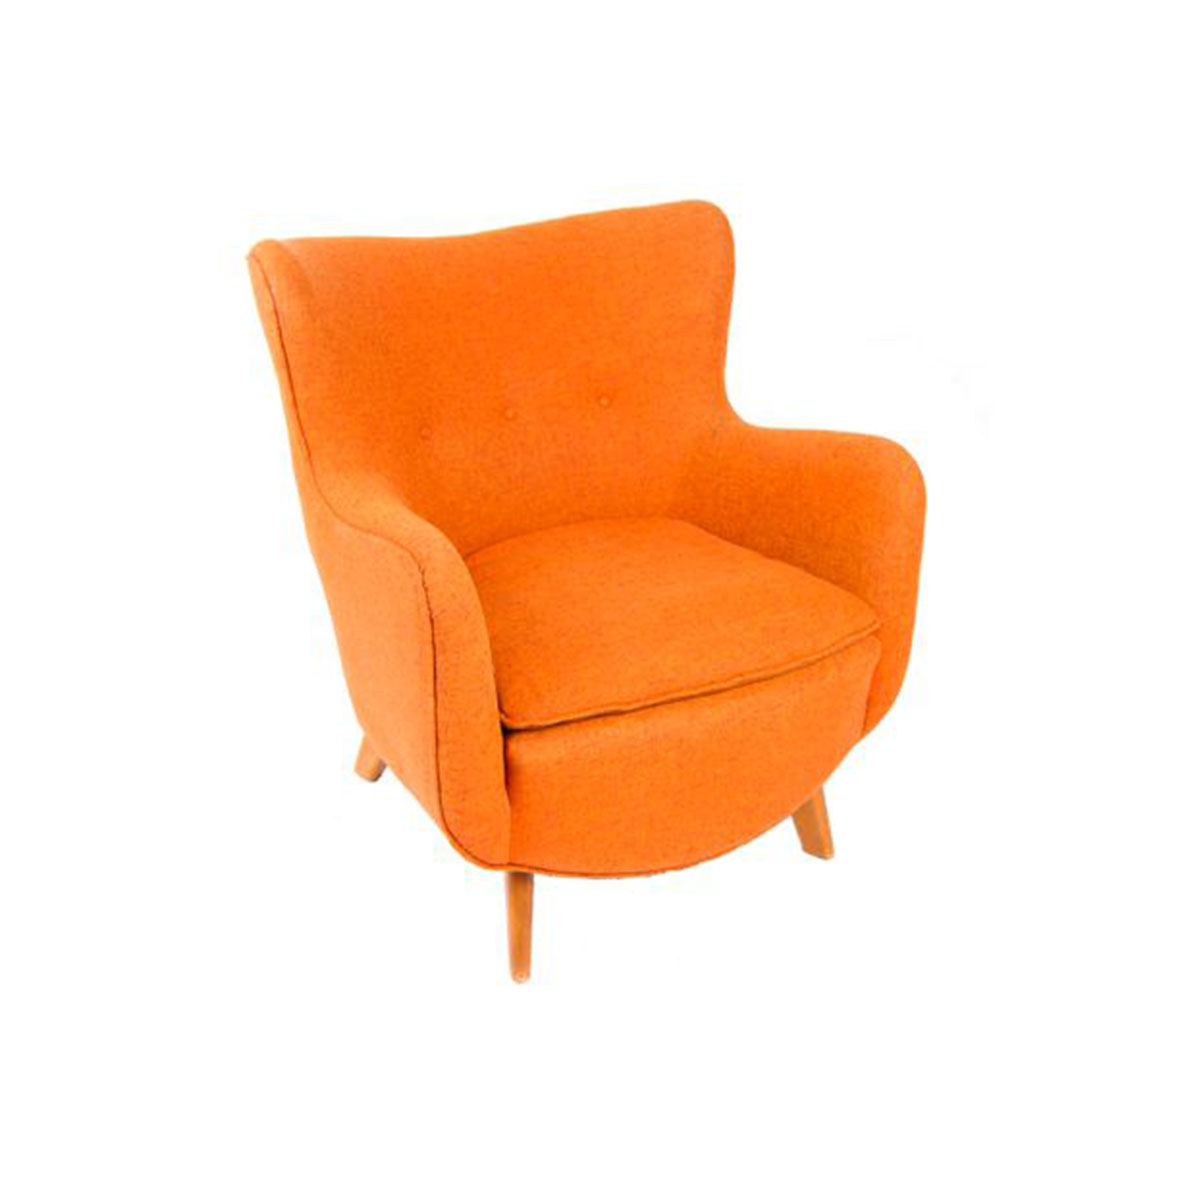 1950's Mid Century Orange Comfy Lounge Chair